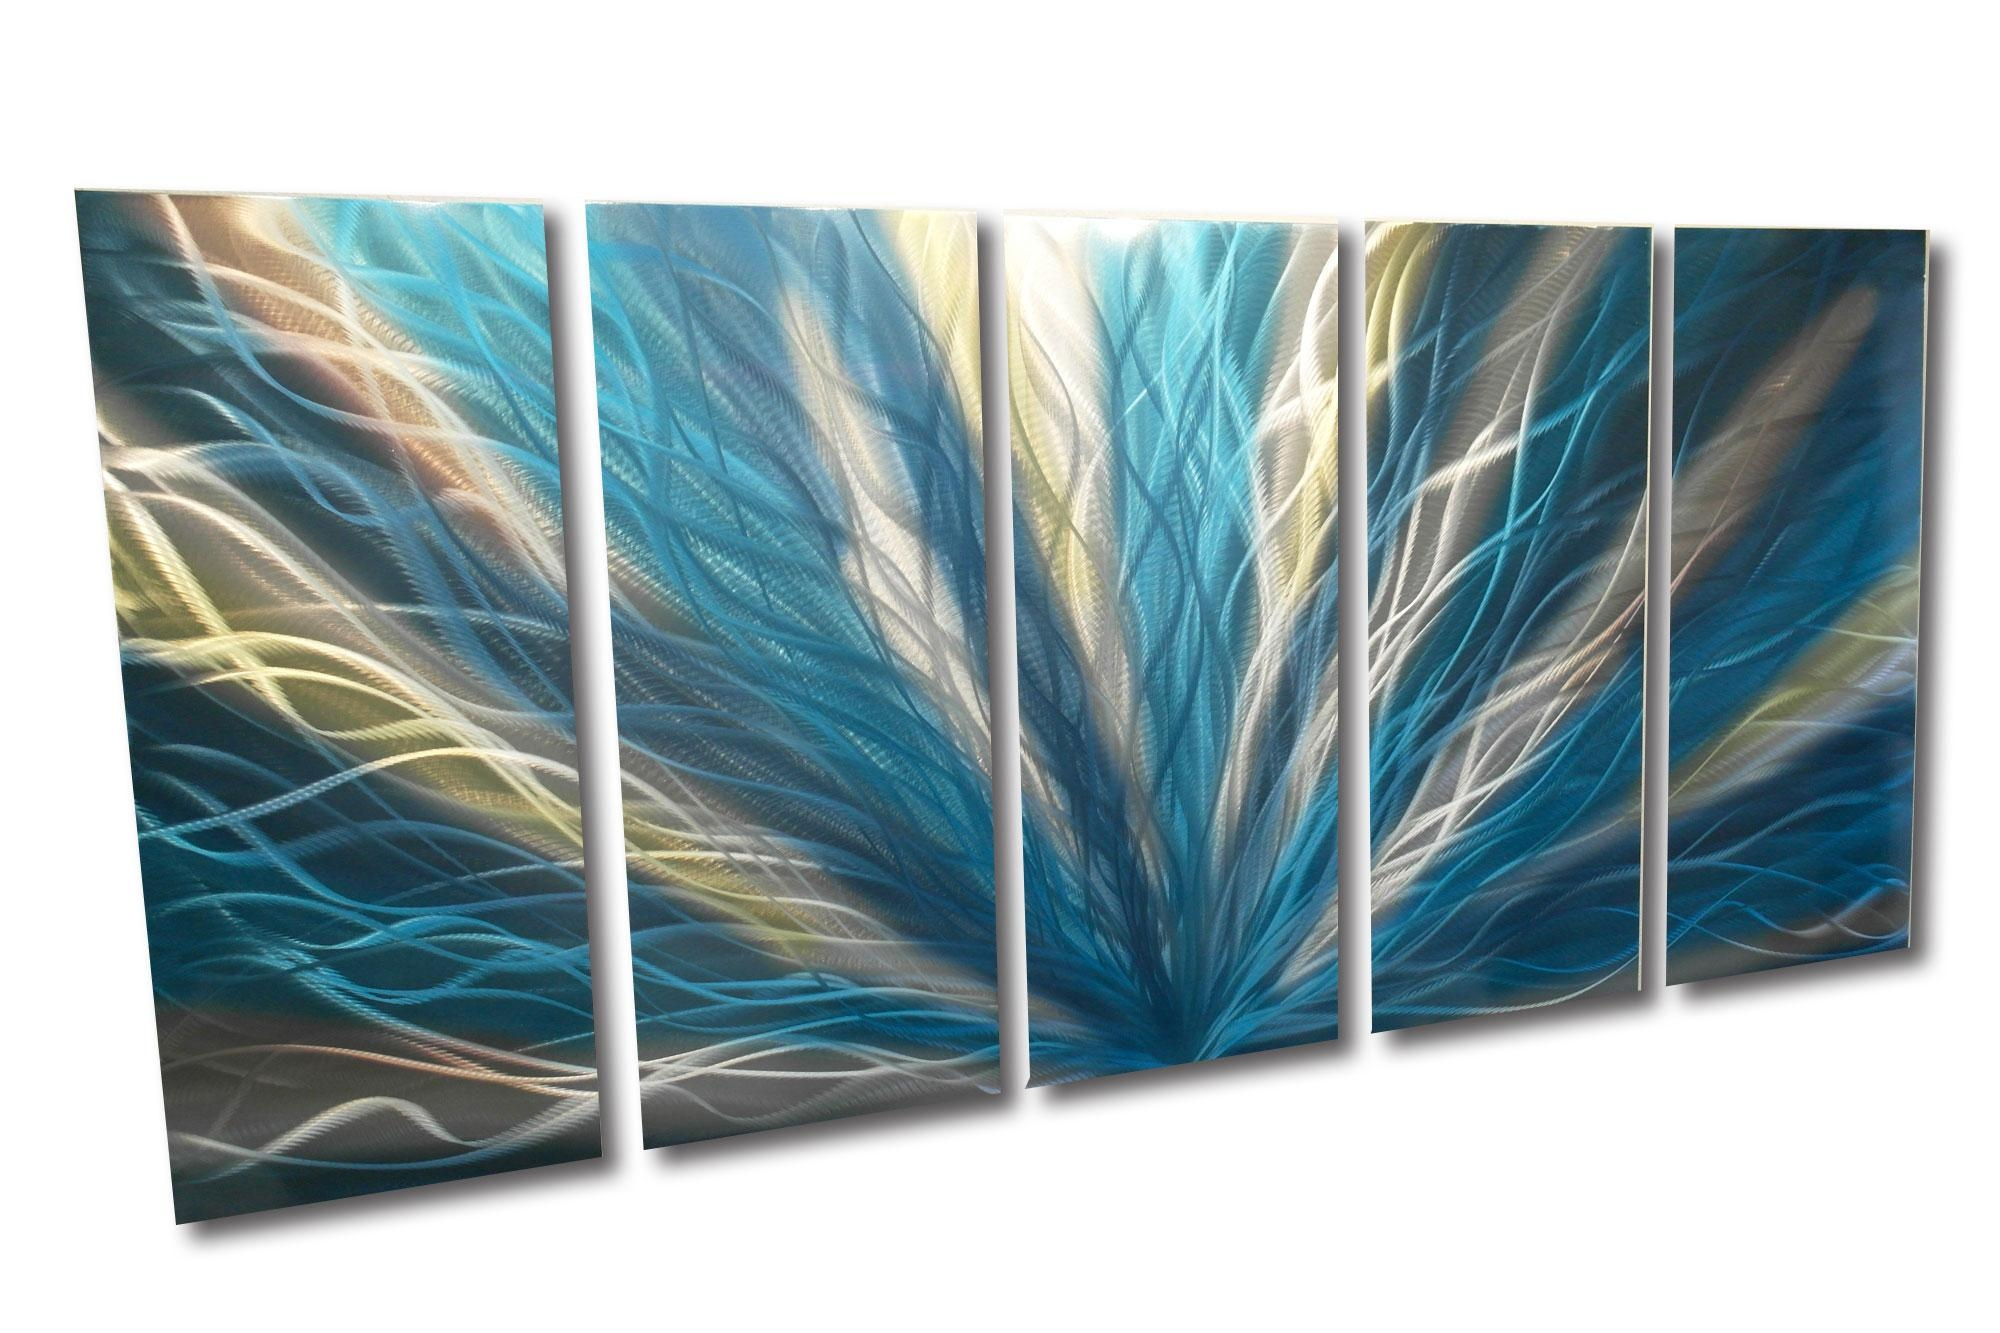 Radiance Teal 36X79 – Metal Wall Art Abstract Sculpture Modern Intended For Turquoise Metal Wall Art (Image 10 of 20)